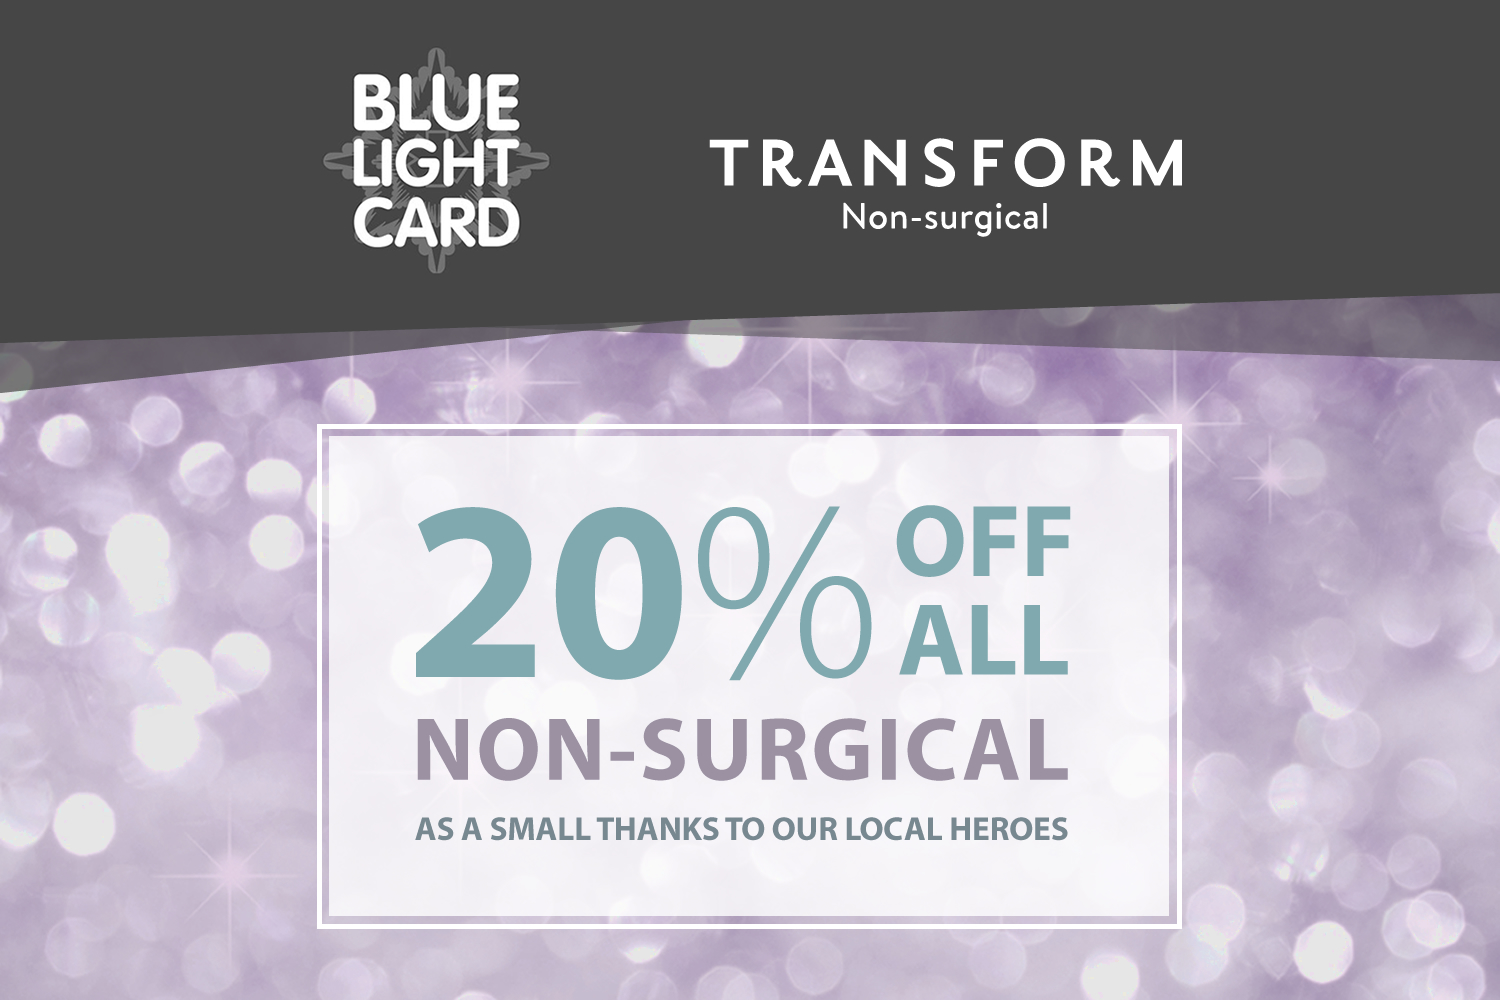 Transform offering amazing discounts!